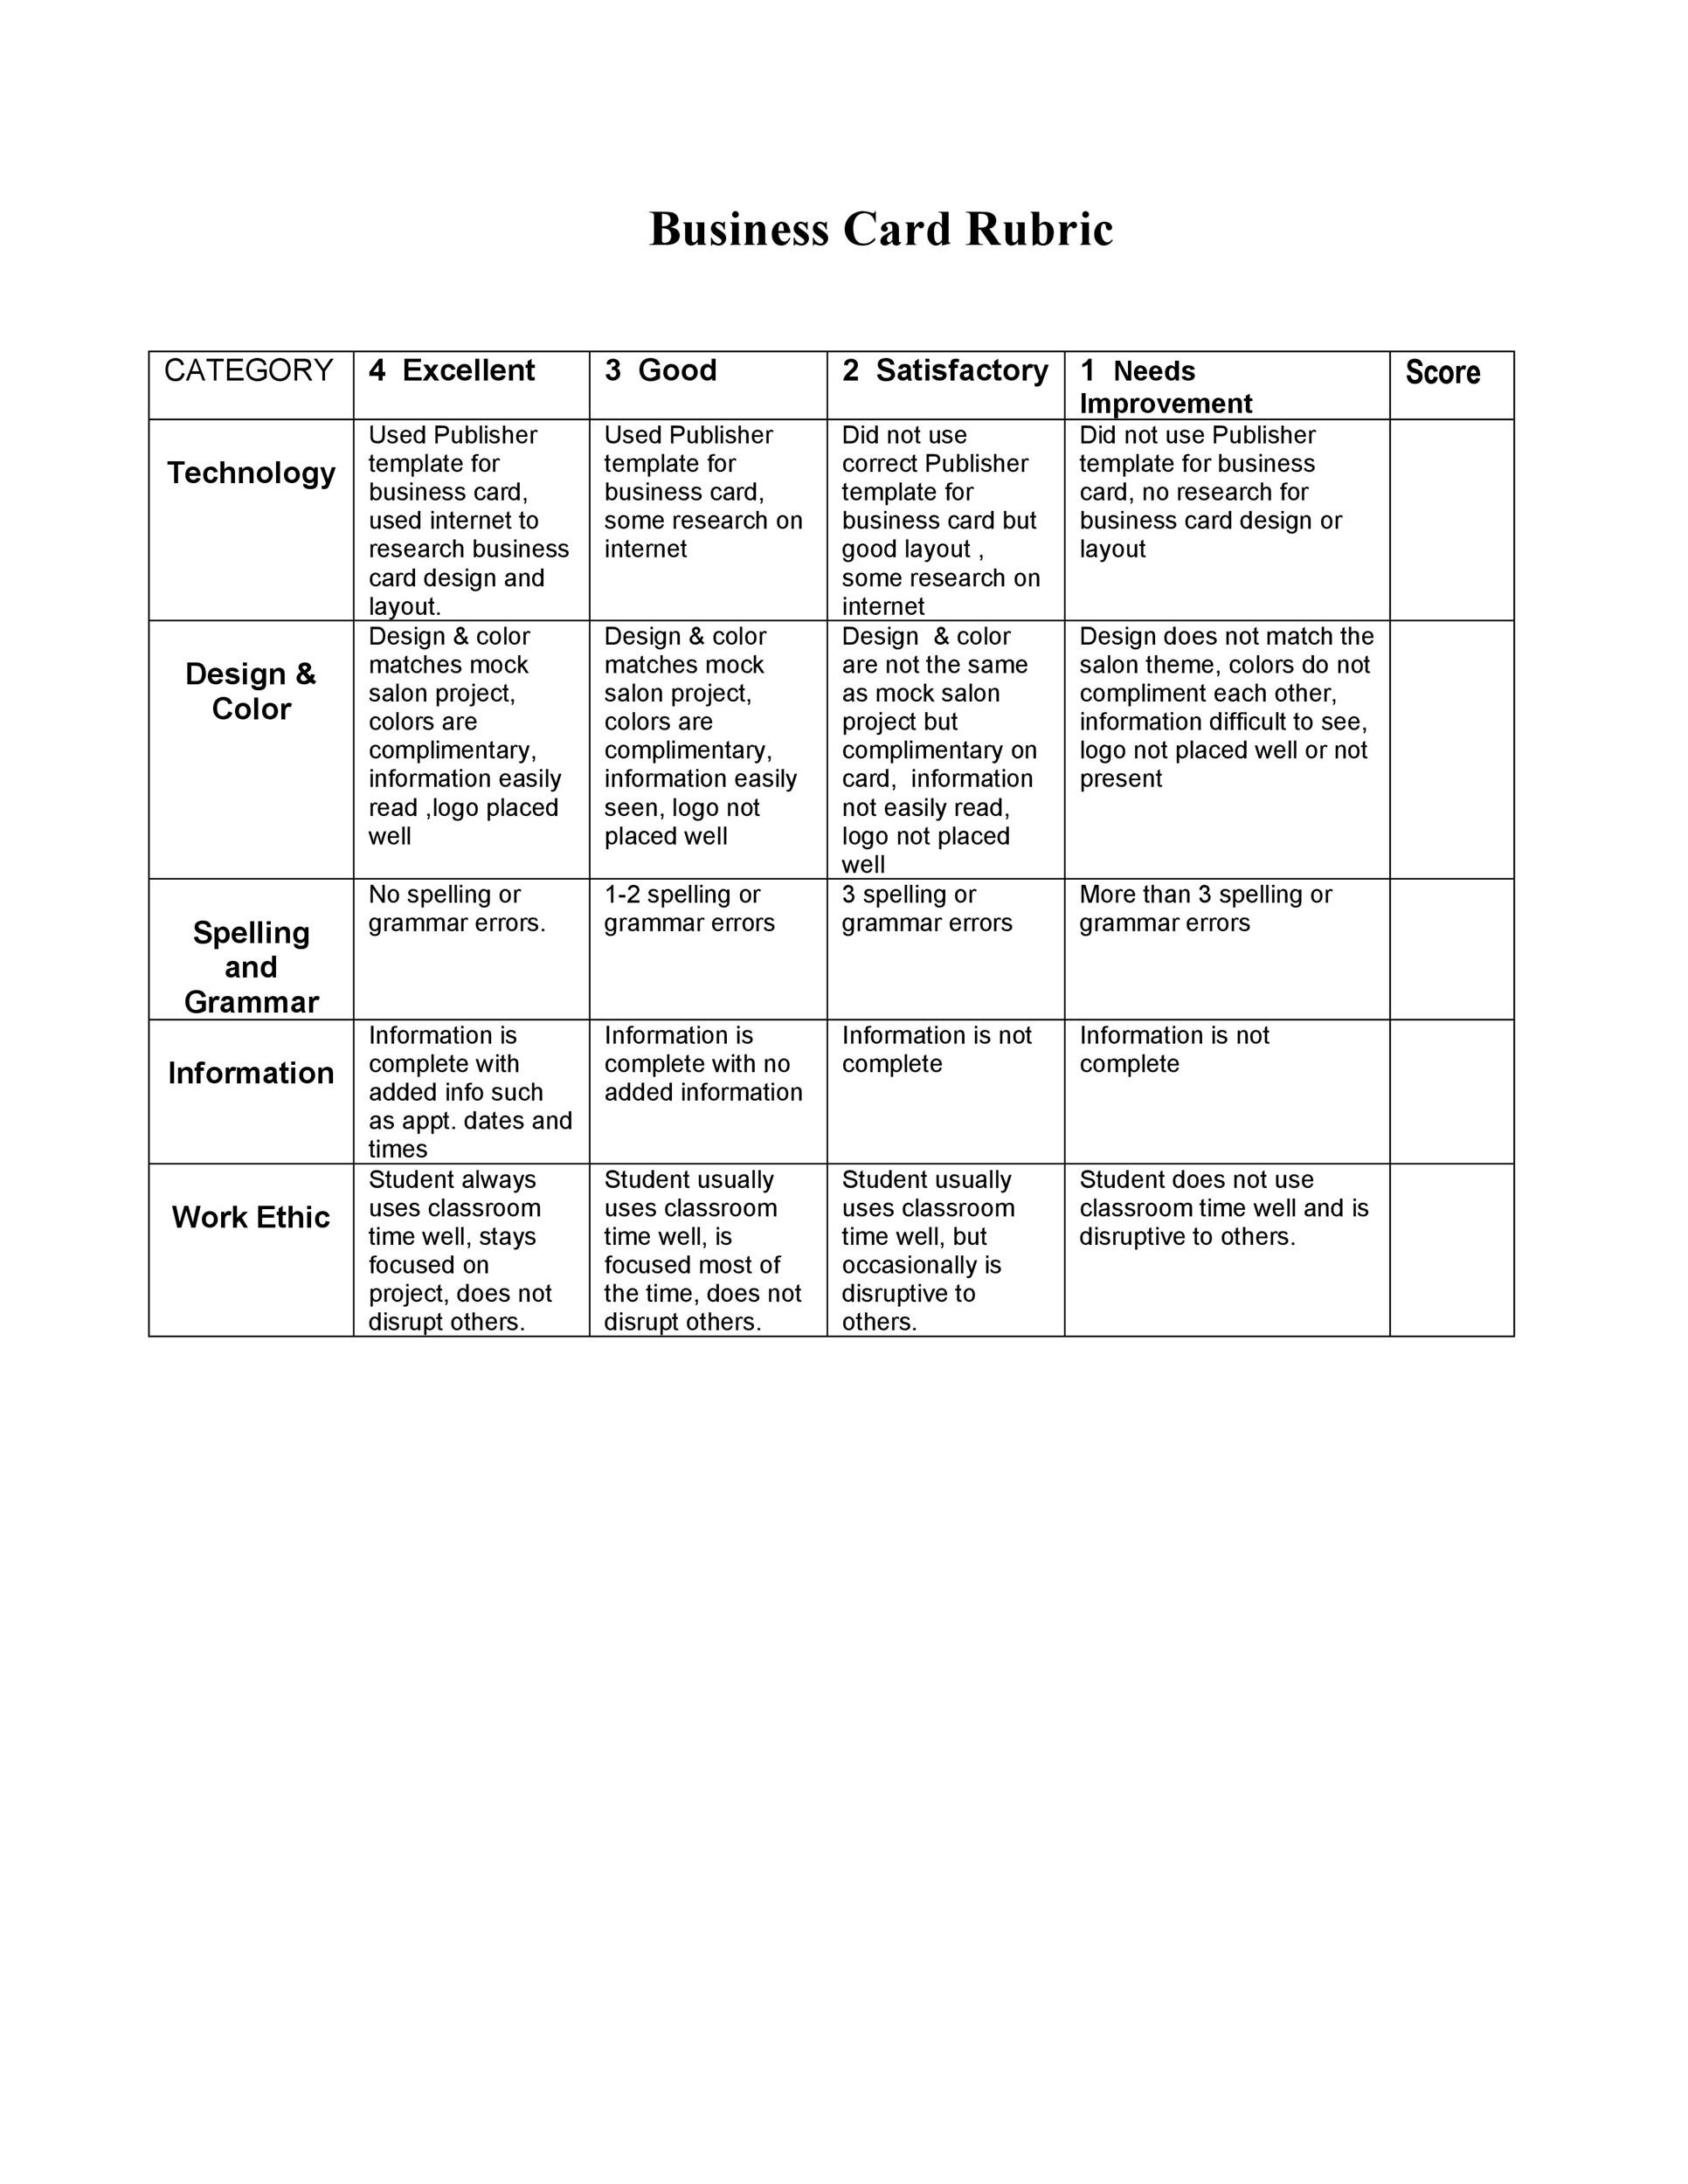 Rubric Template Free from templatelab.com